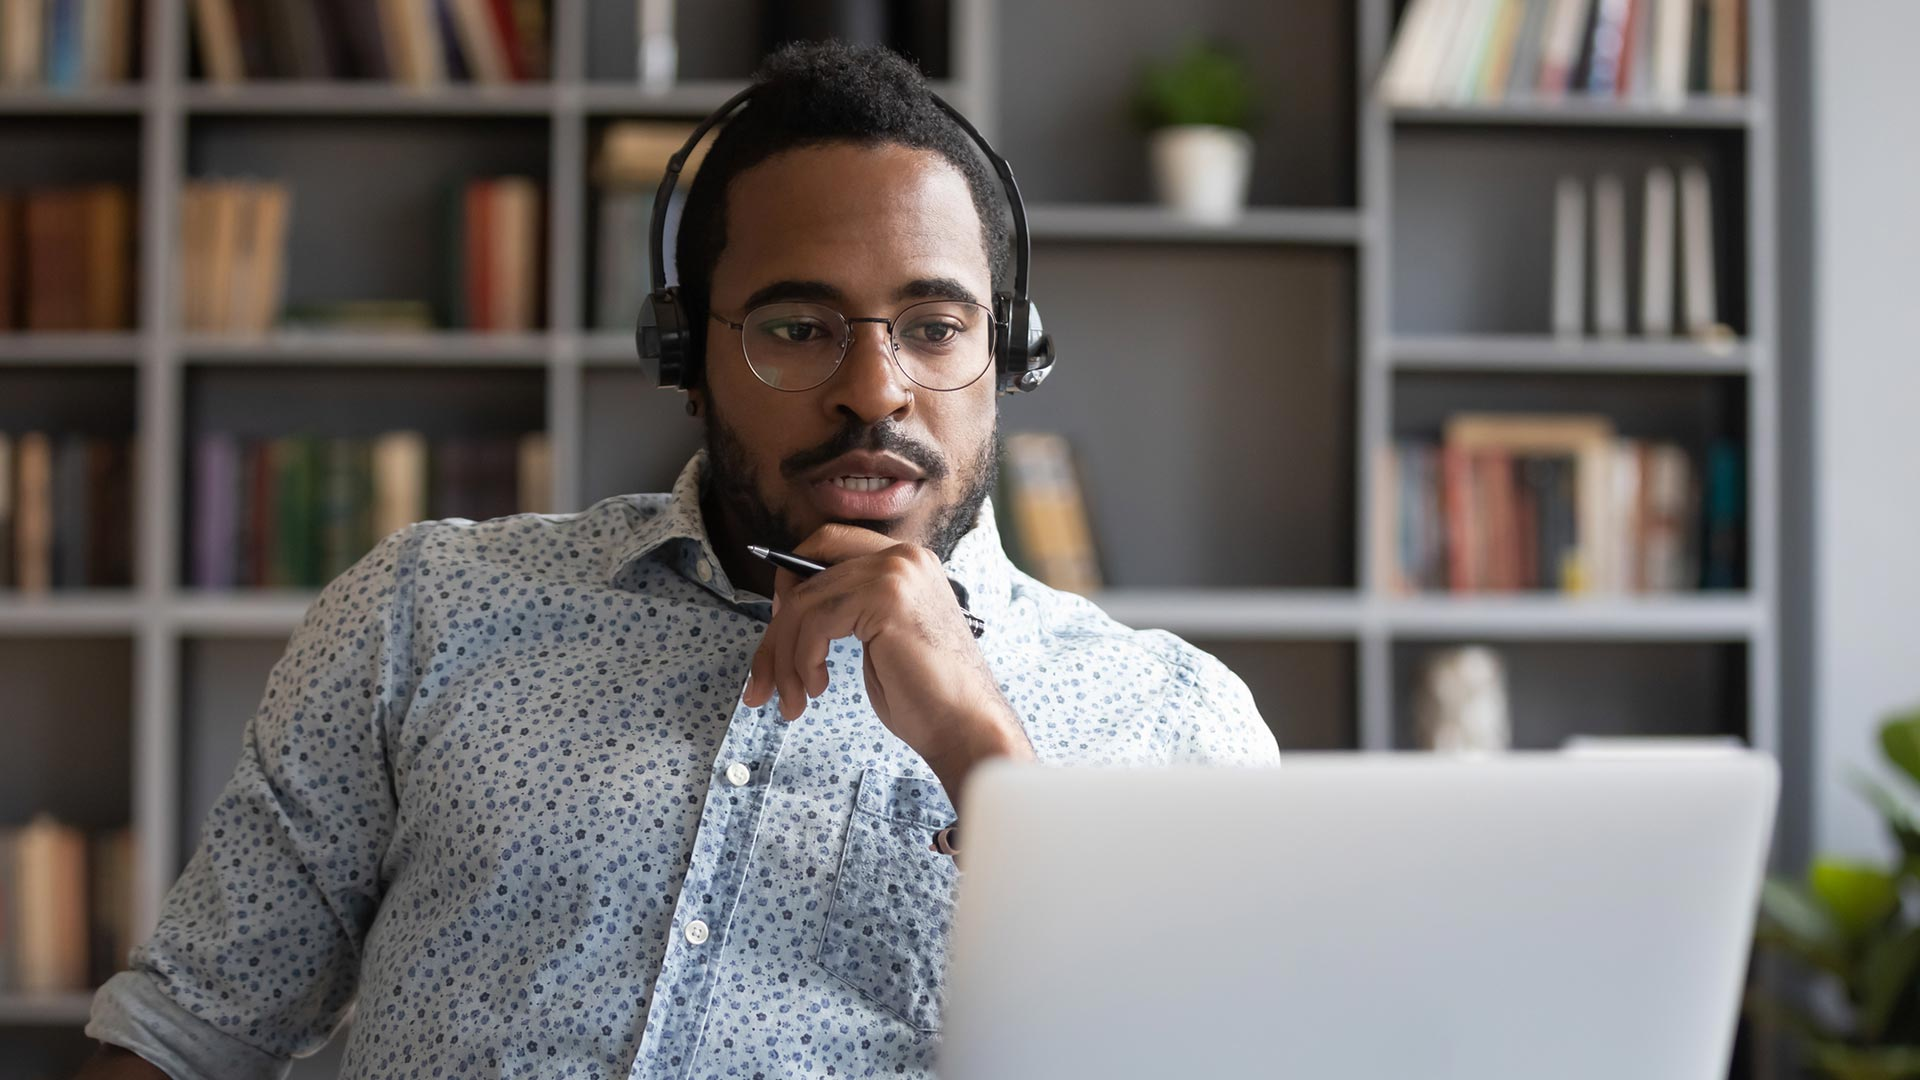 The Best Remote Collaboration Tools for Connecting Your Telework Team